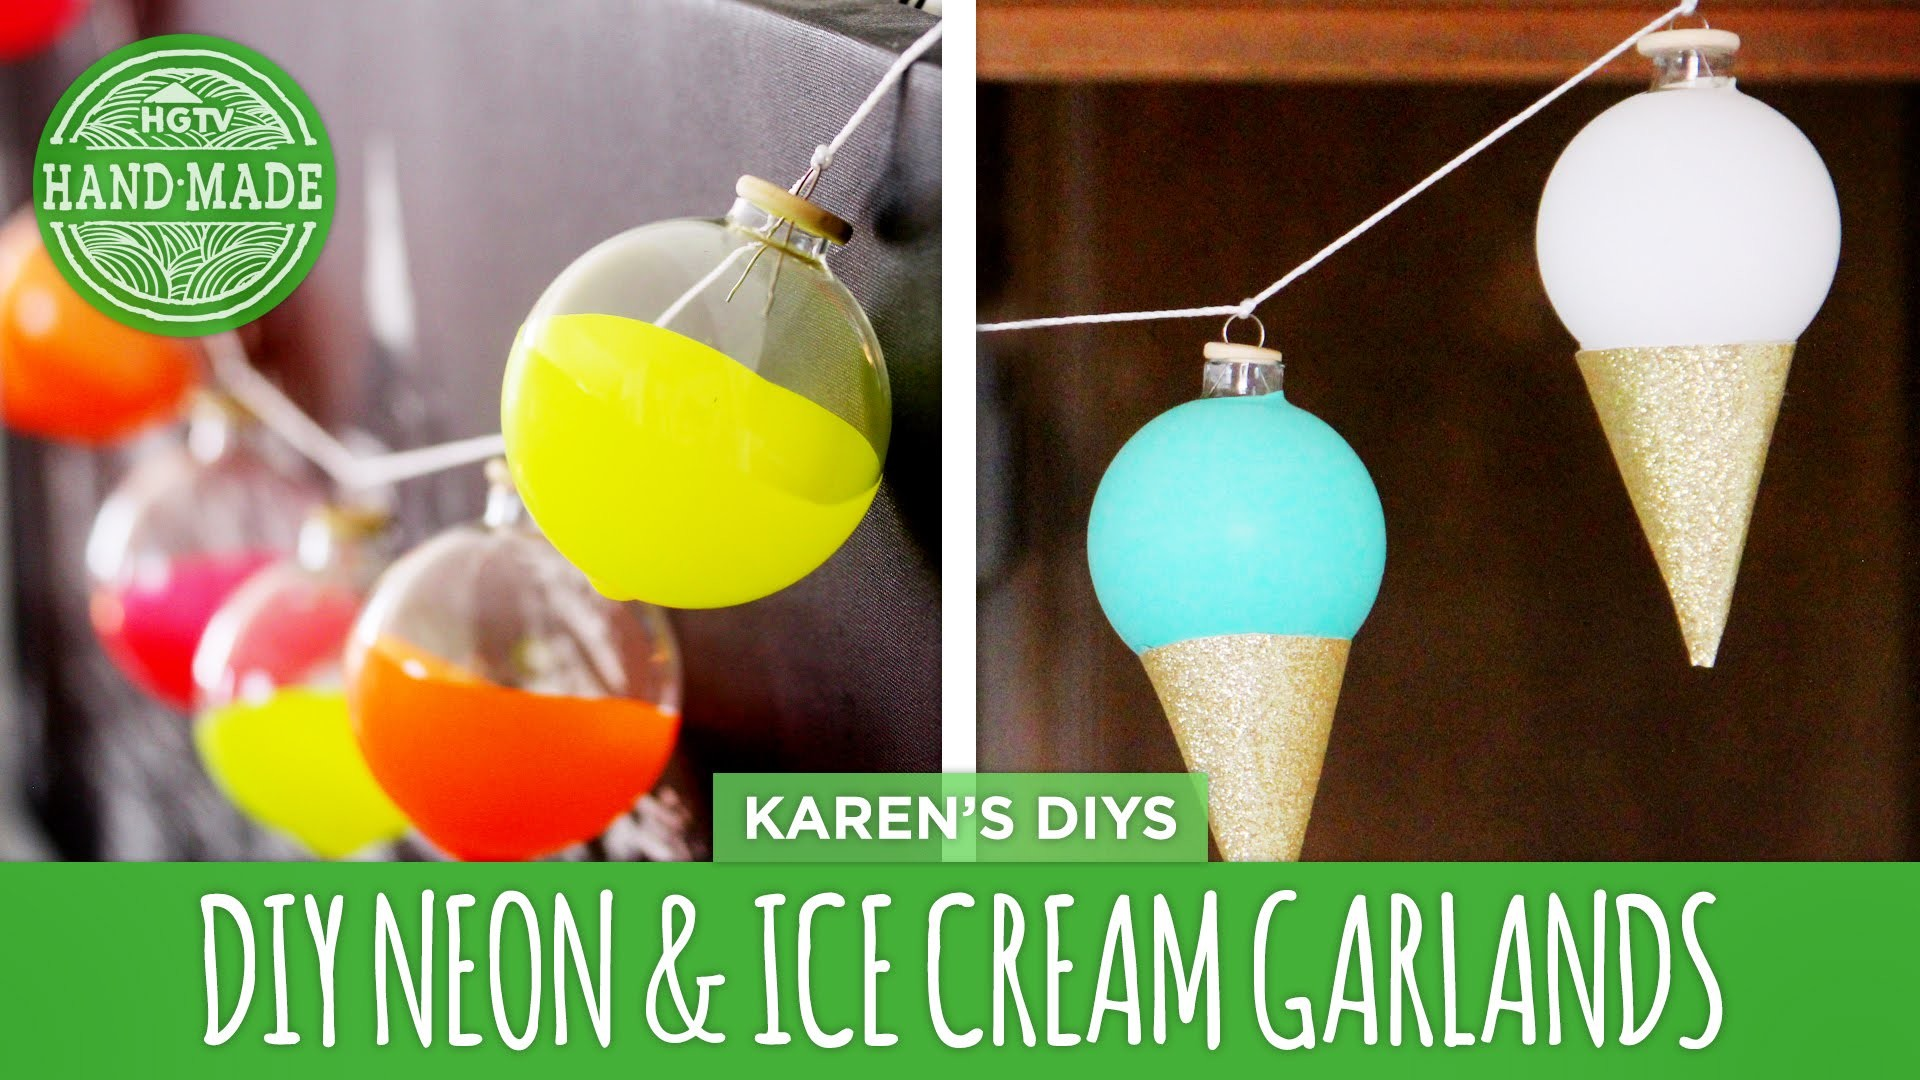 DIY Colorblocked Neon & Ice Cream Springtime Garlands - HGTV Handmade